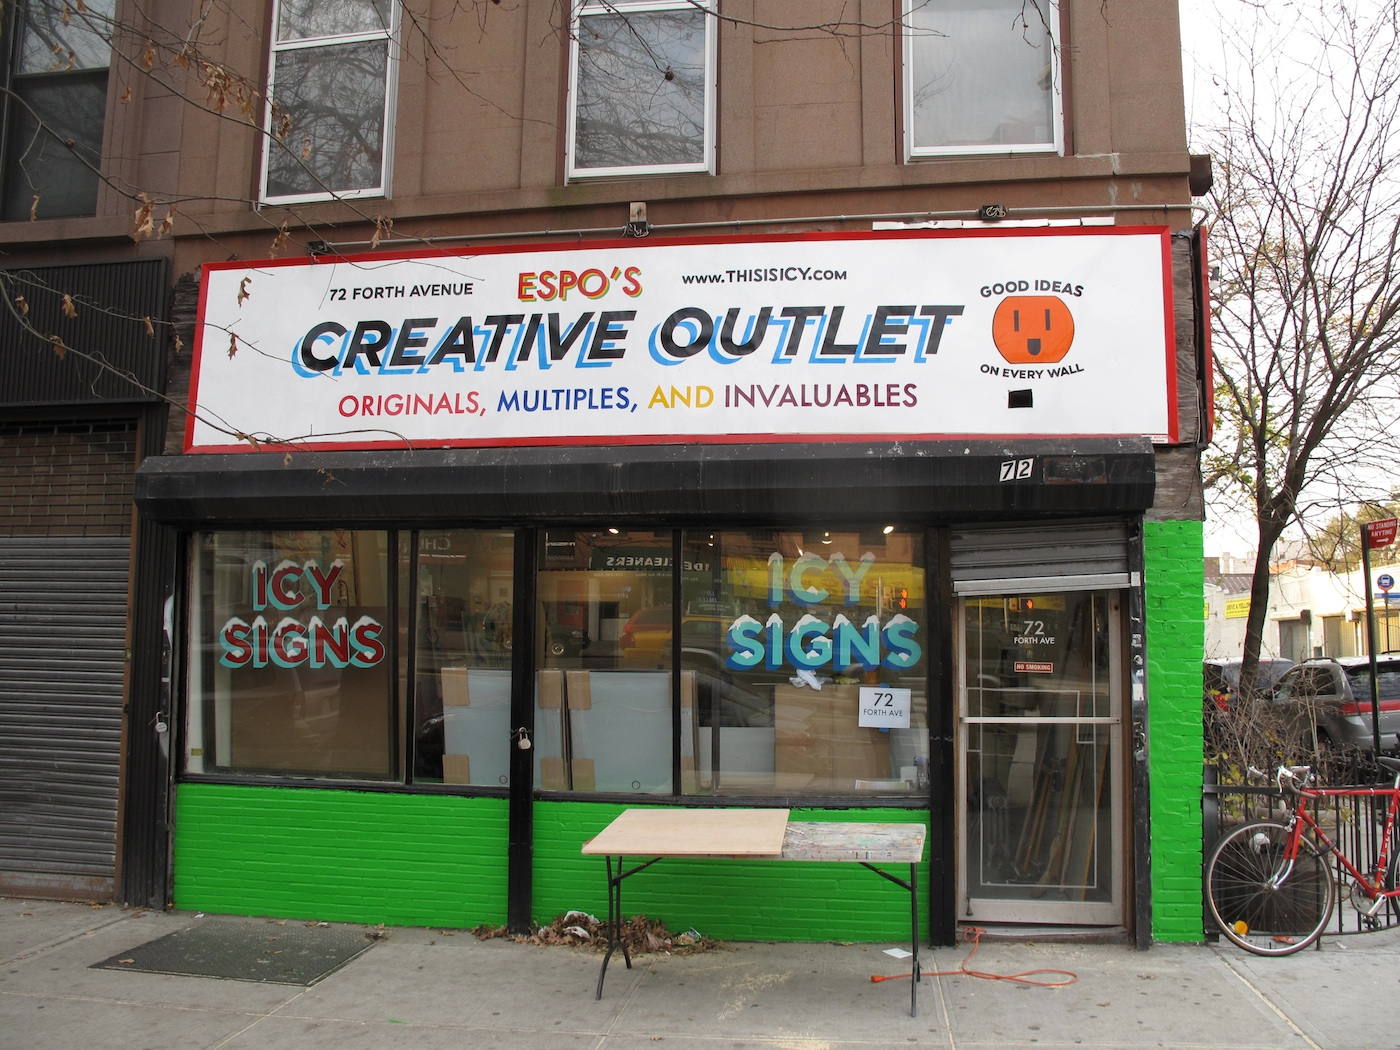 ESPO's Creative Outlet in Brooklyn: espo_creative_outlet_4_20121217_2057139888.jpg